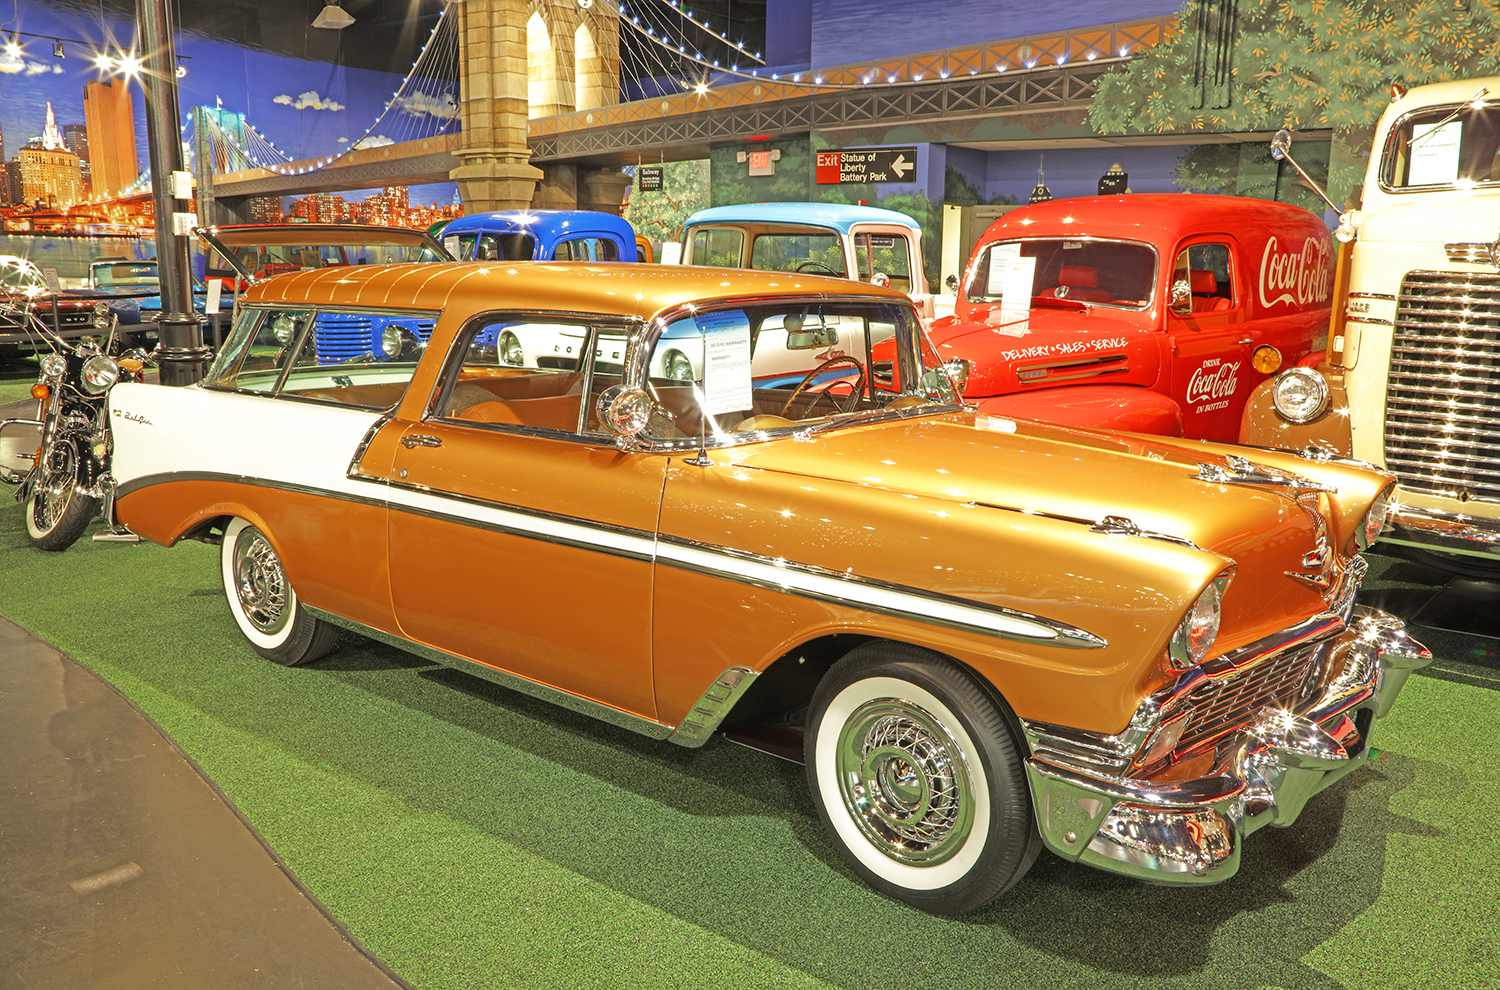 1956 Chevrolet Nomad Wagon Welcome To Cars Of Dreams Museum 1957 Chevy